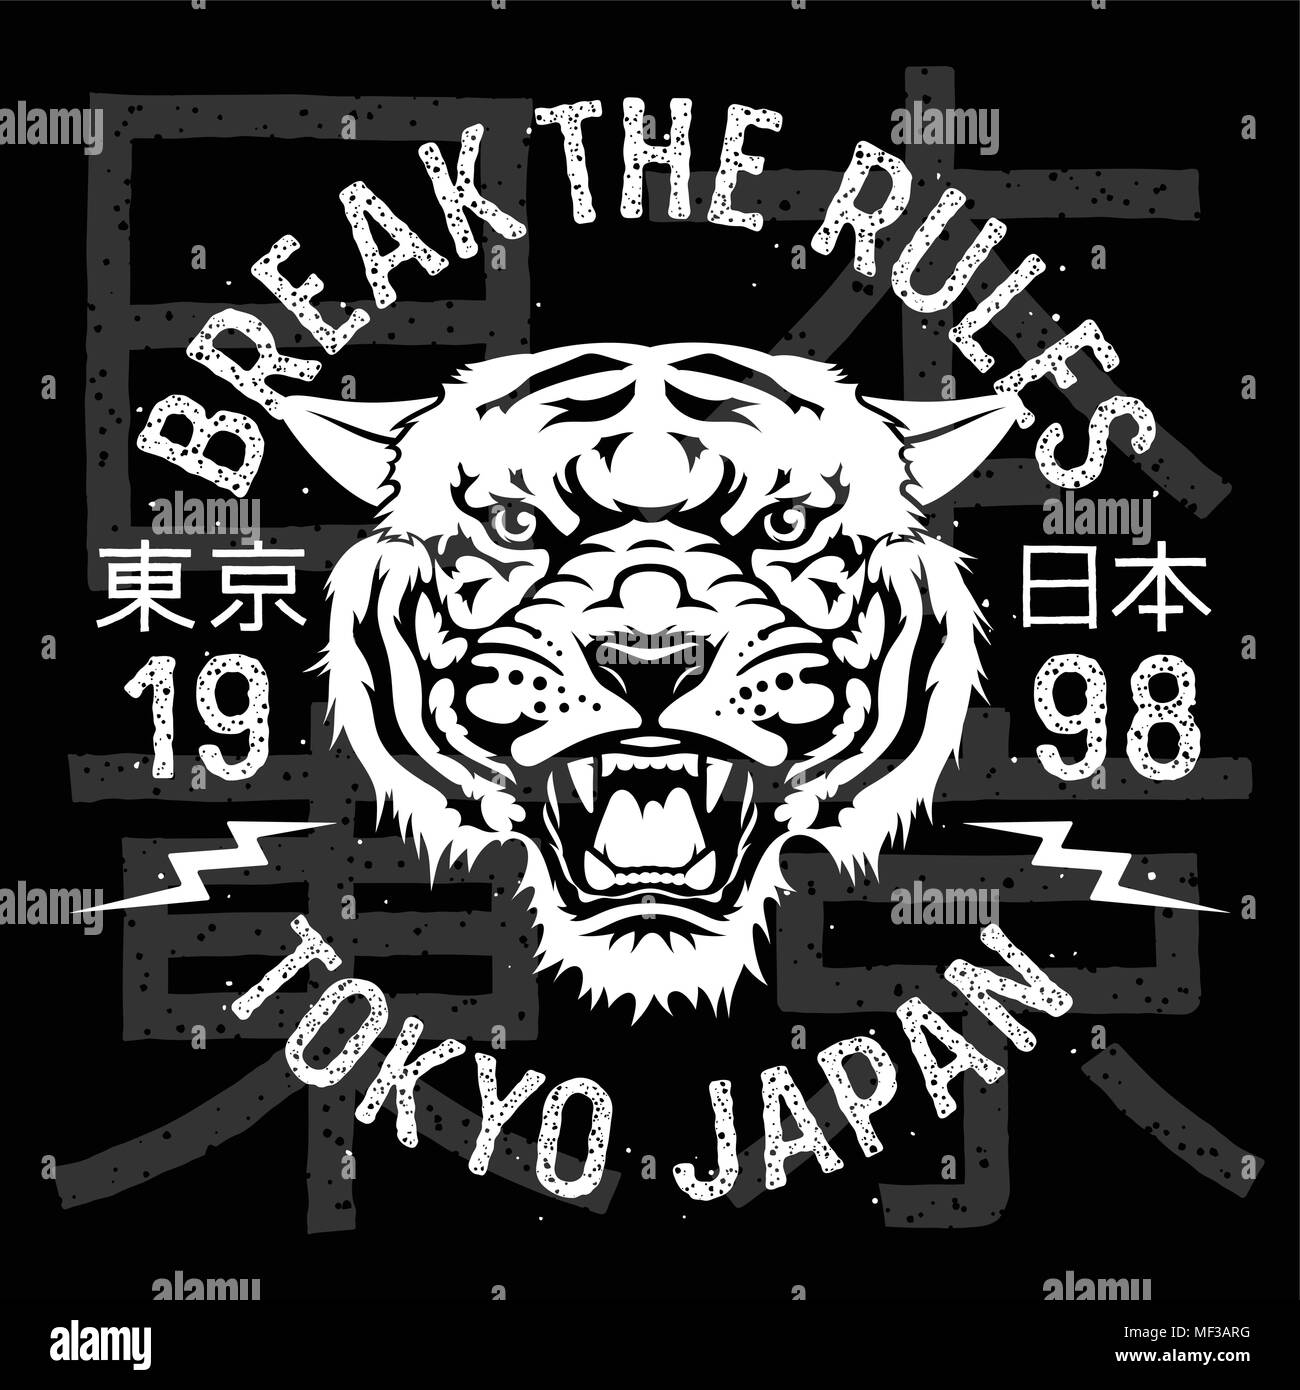 Tiger patch embroidery. Vector illustration. T-shirt print design. Tokyo Japan Tee graphics - Stock Image